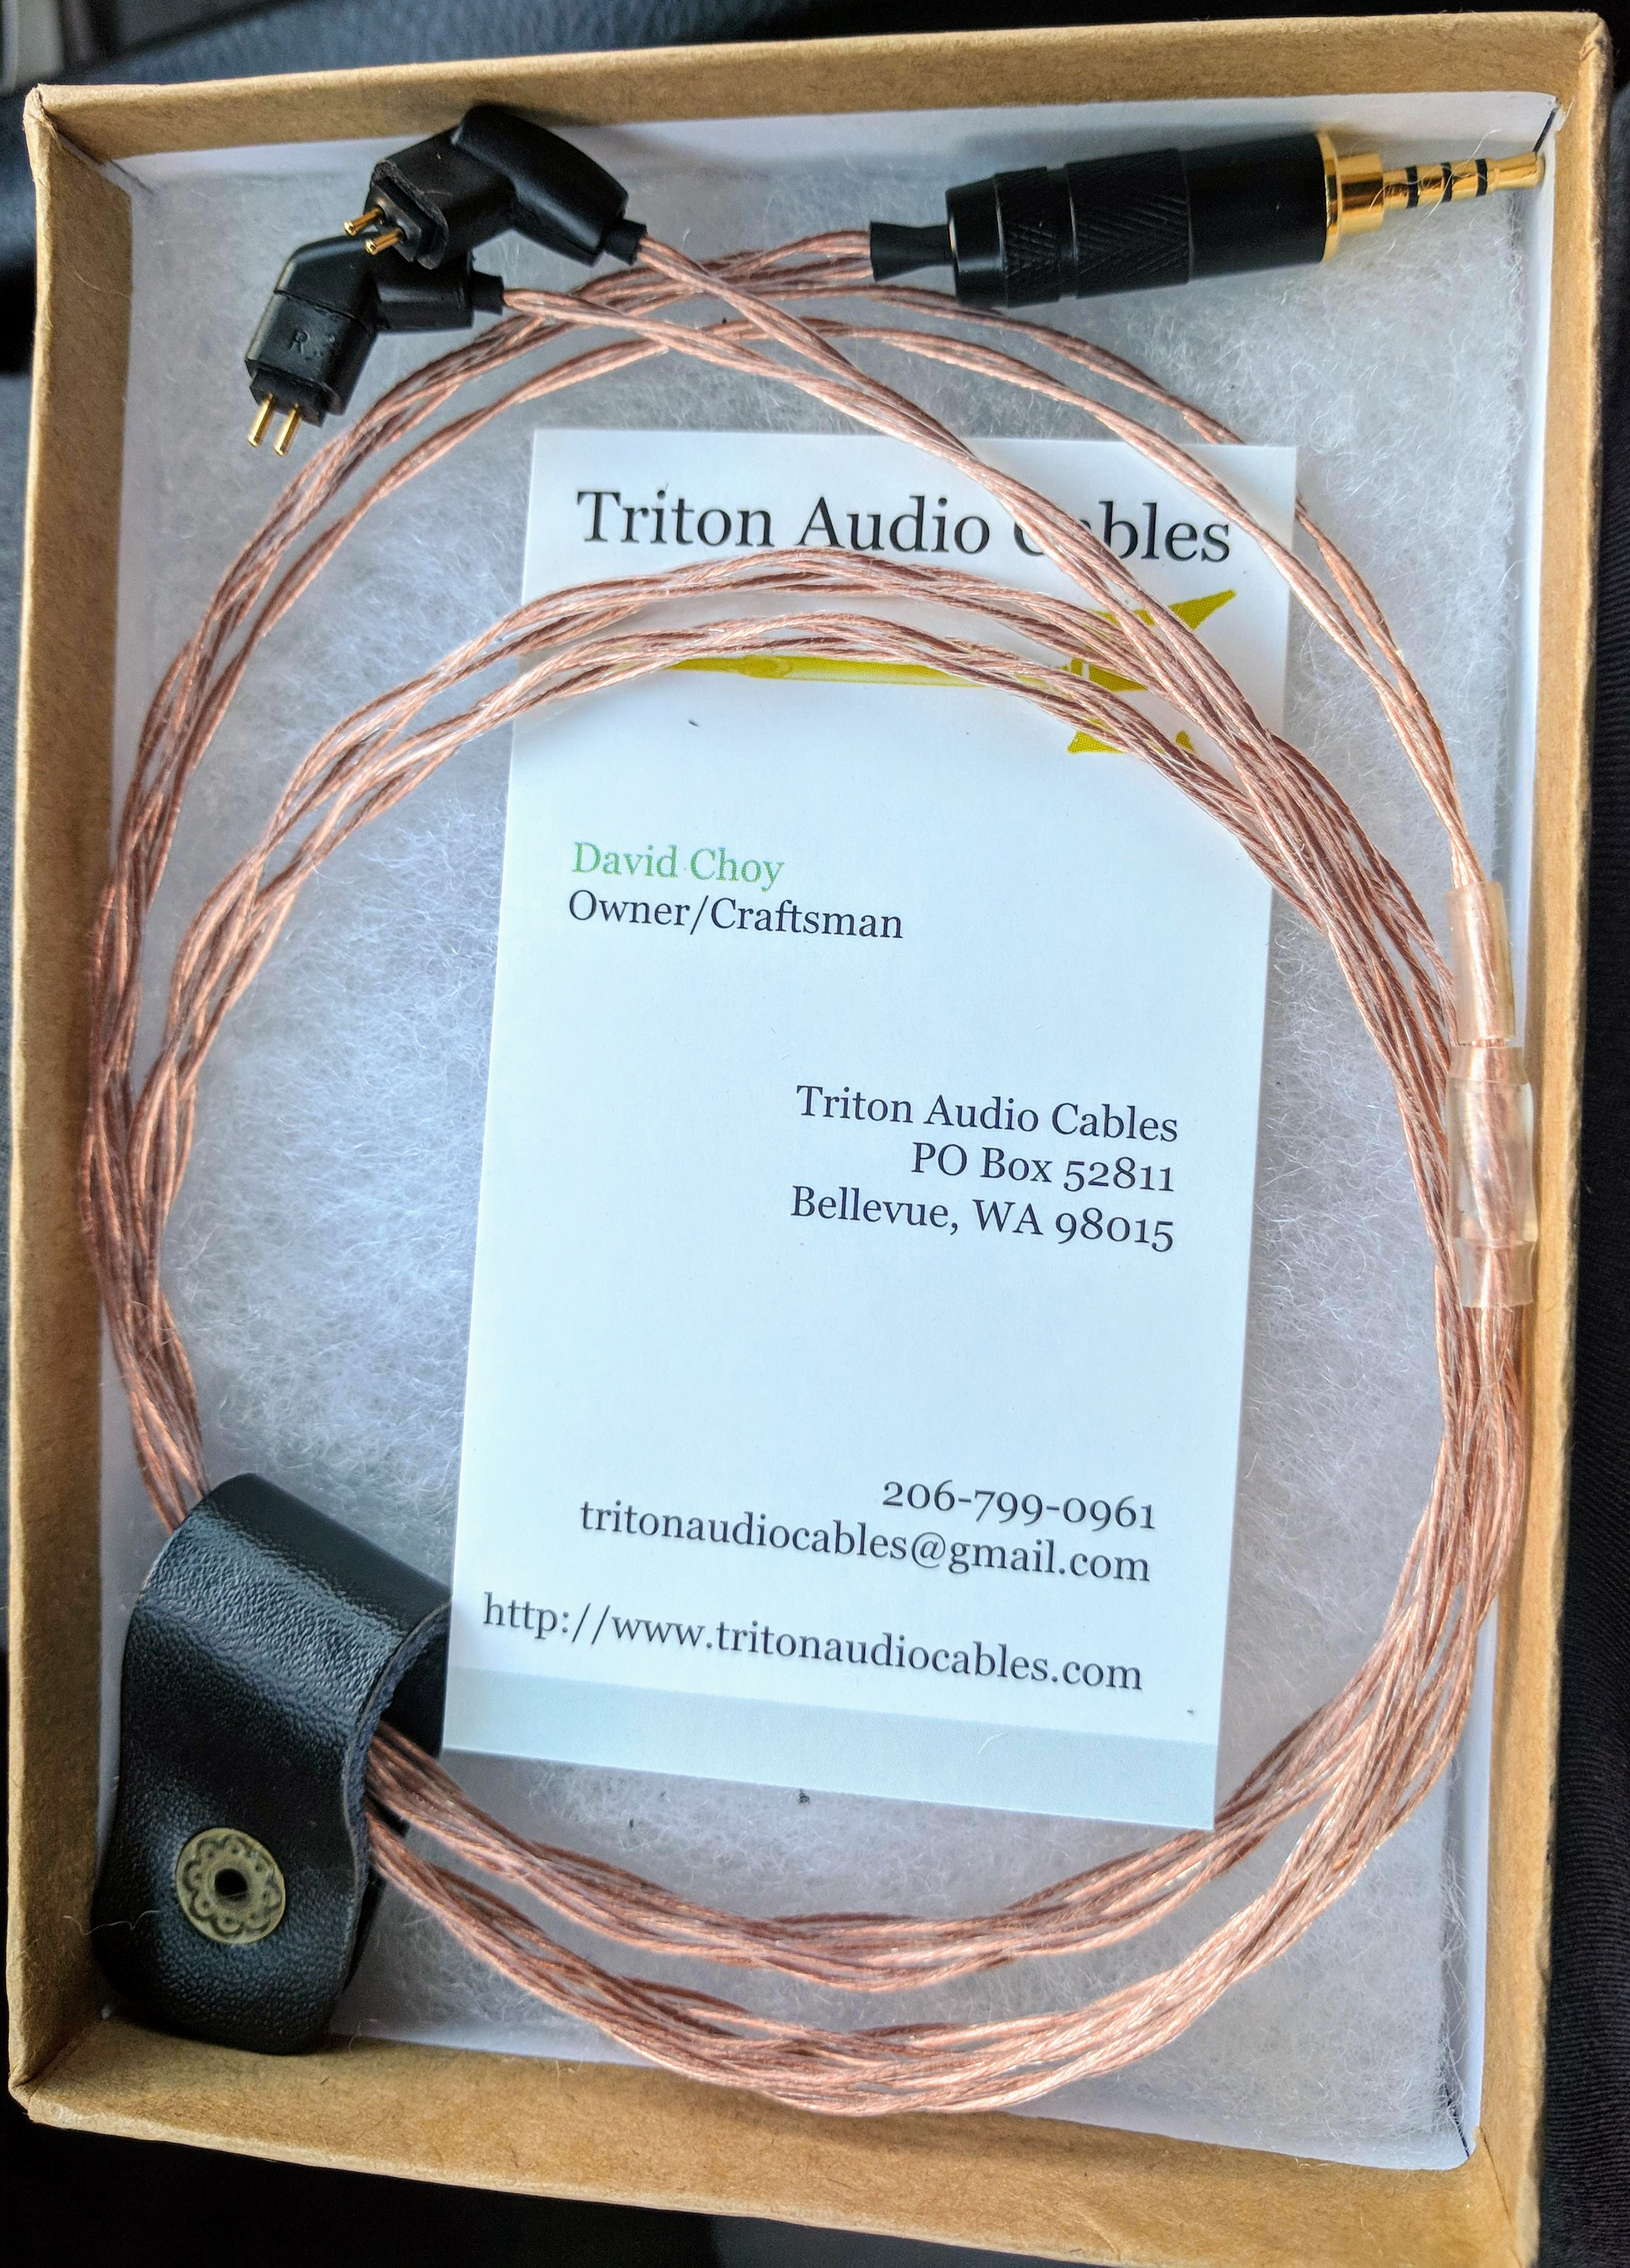 Triton Audio Cables Highly Recommended Headphone Reviews And Cable Wiring Img 20181003 174428 20181004 223441